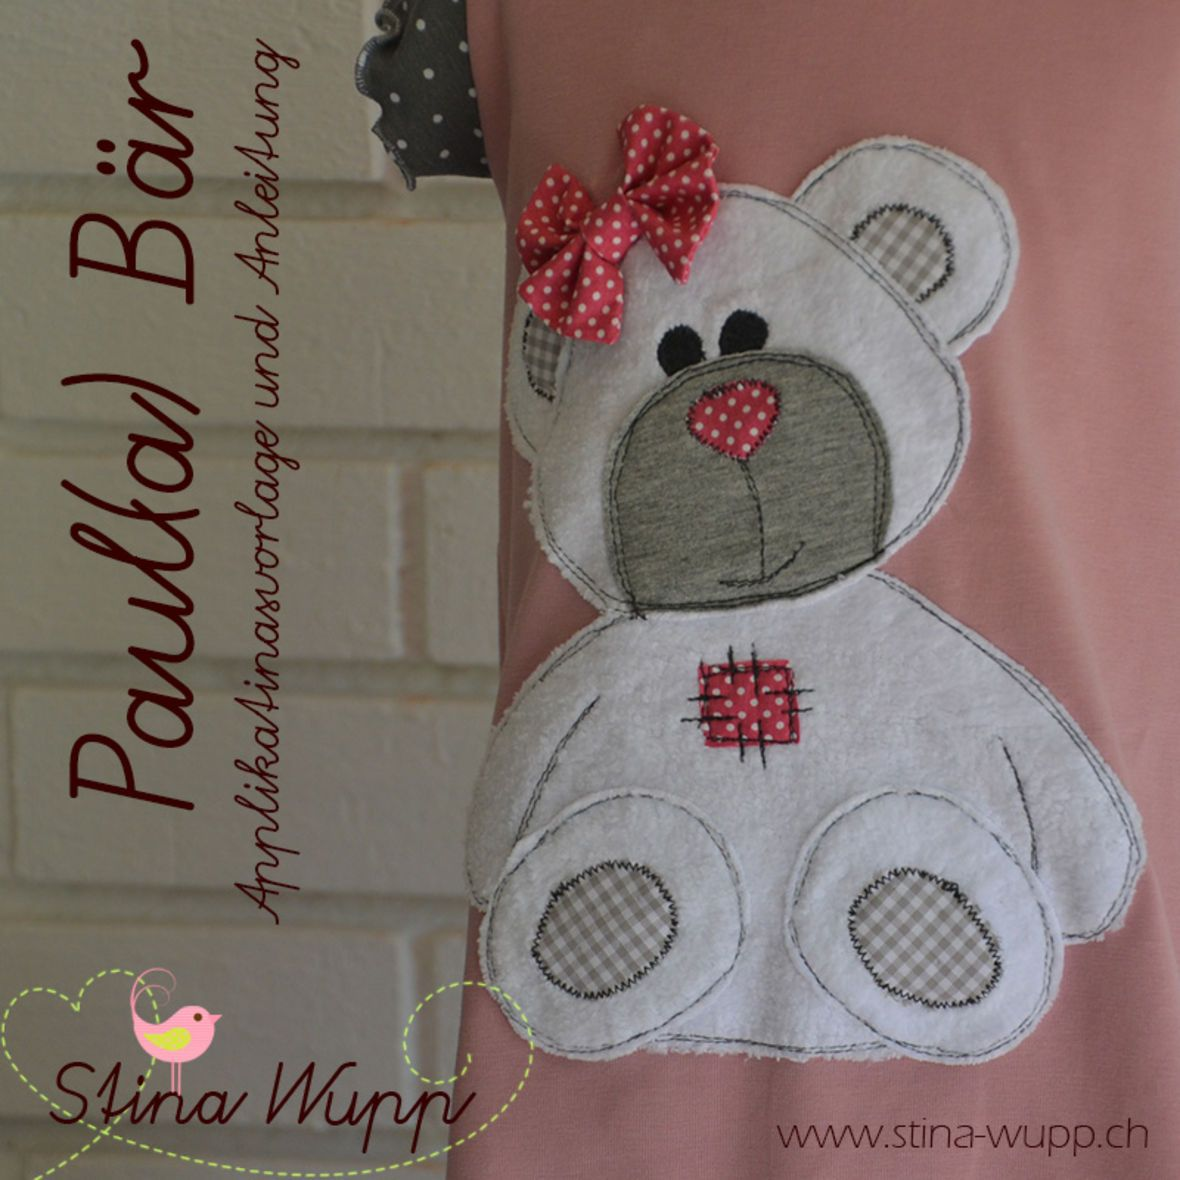 Baby Krabbeldecke Patchwork Nähen Ebook Applikation Paul A Bär Applikationen